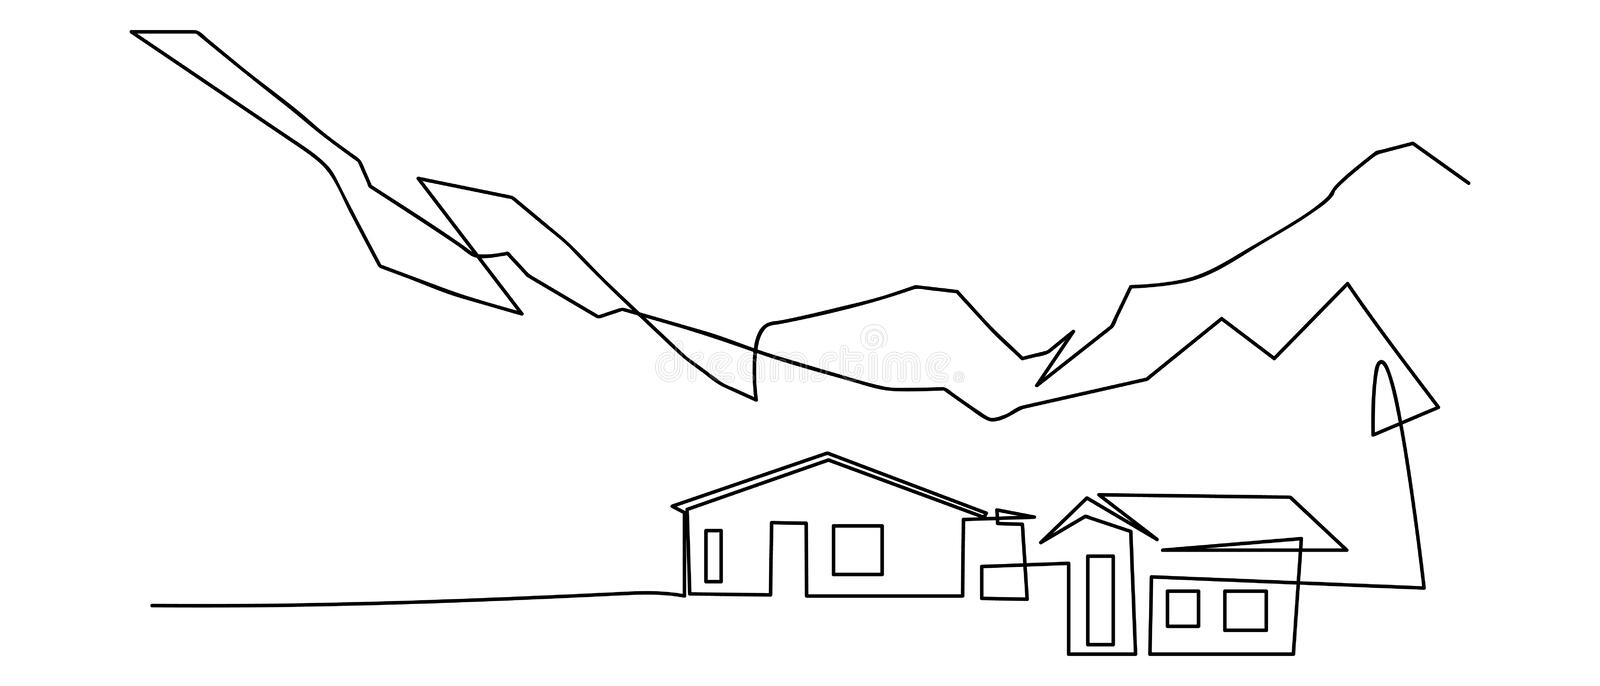 Drawing House Outline Stock Illustrations